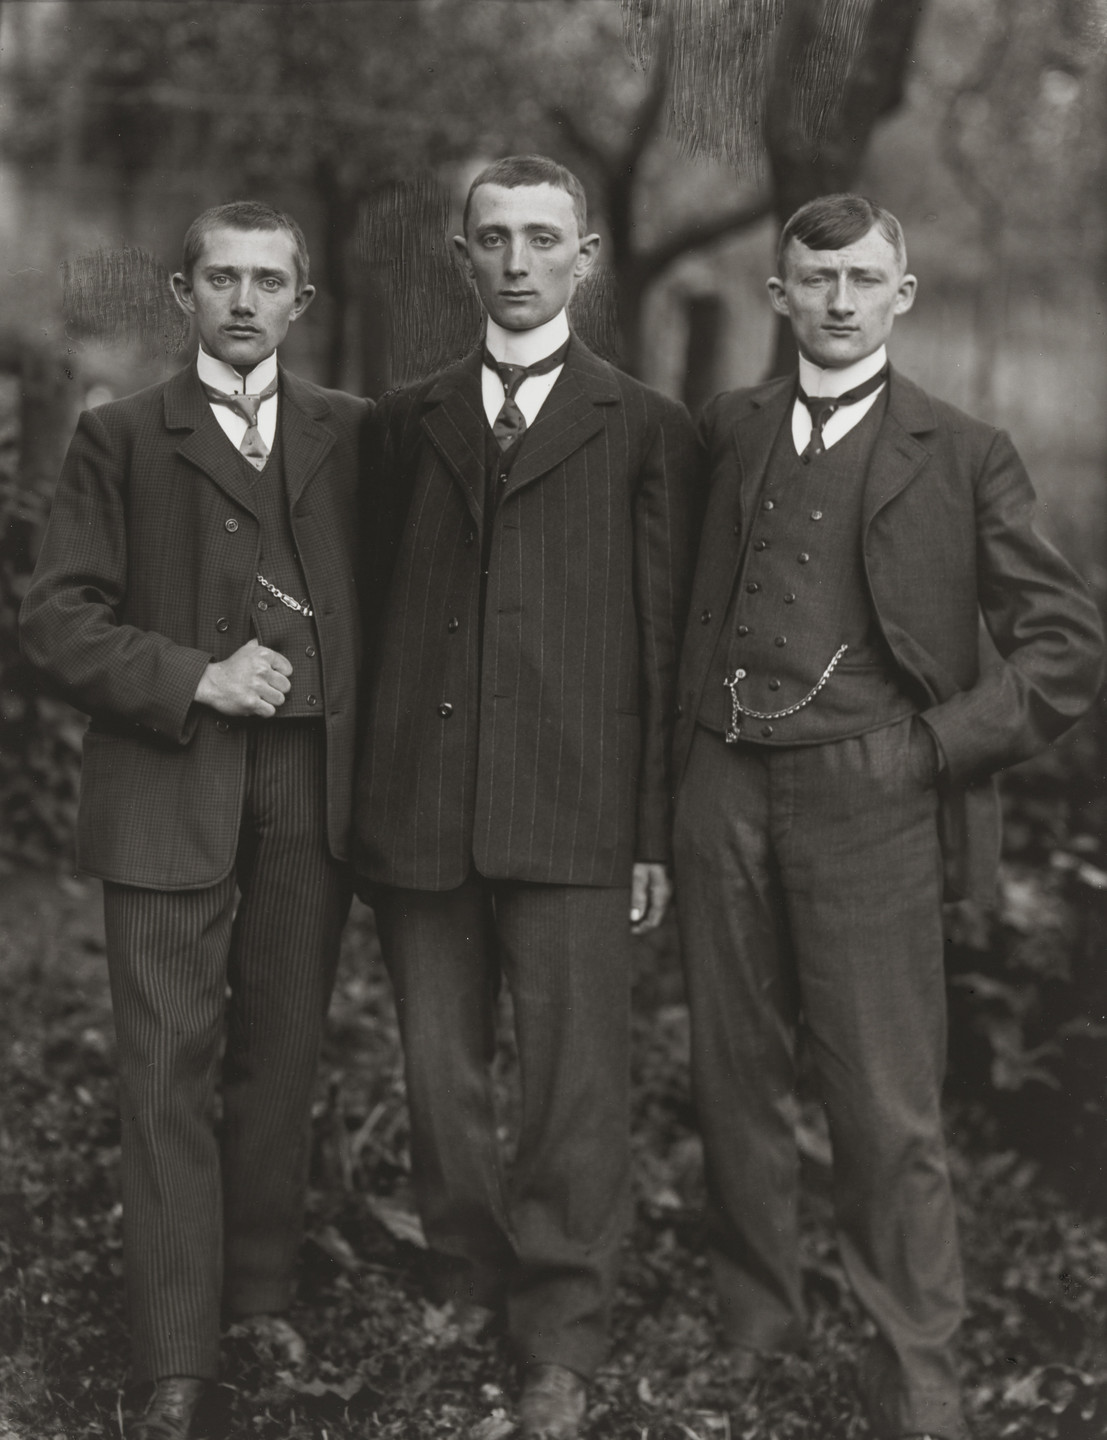 August Sander. Country Lads from the Westerwald. 1912